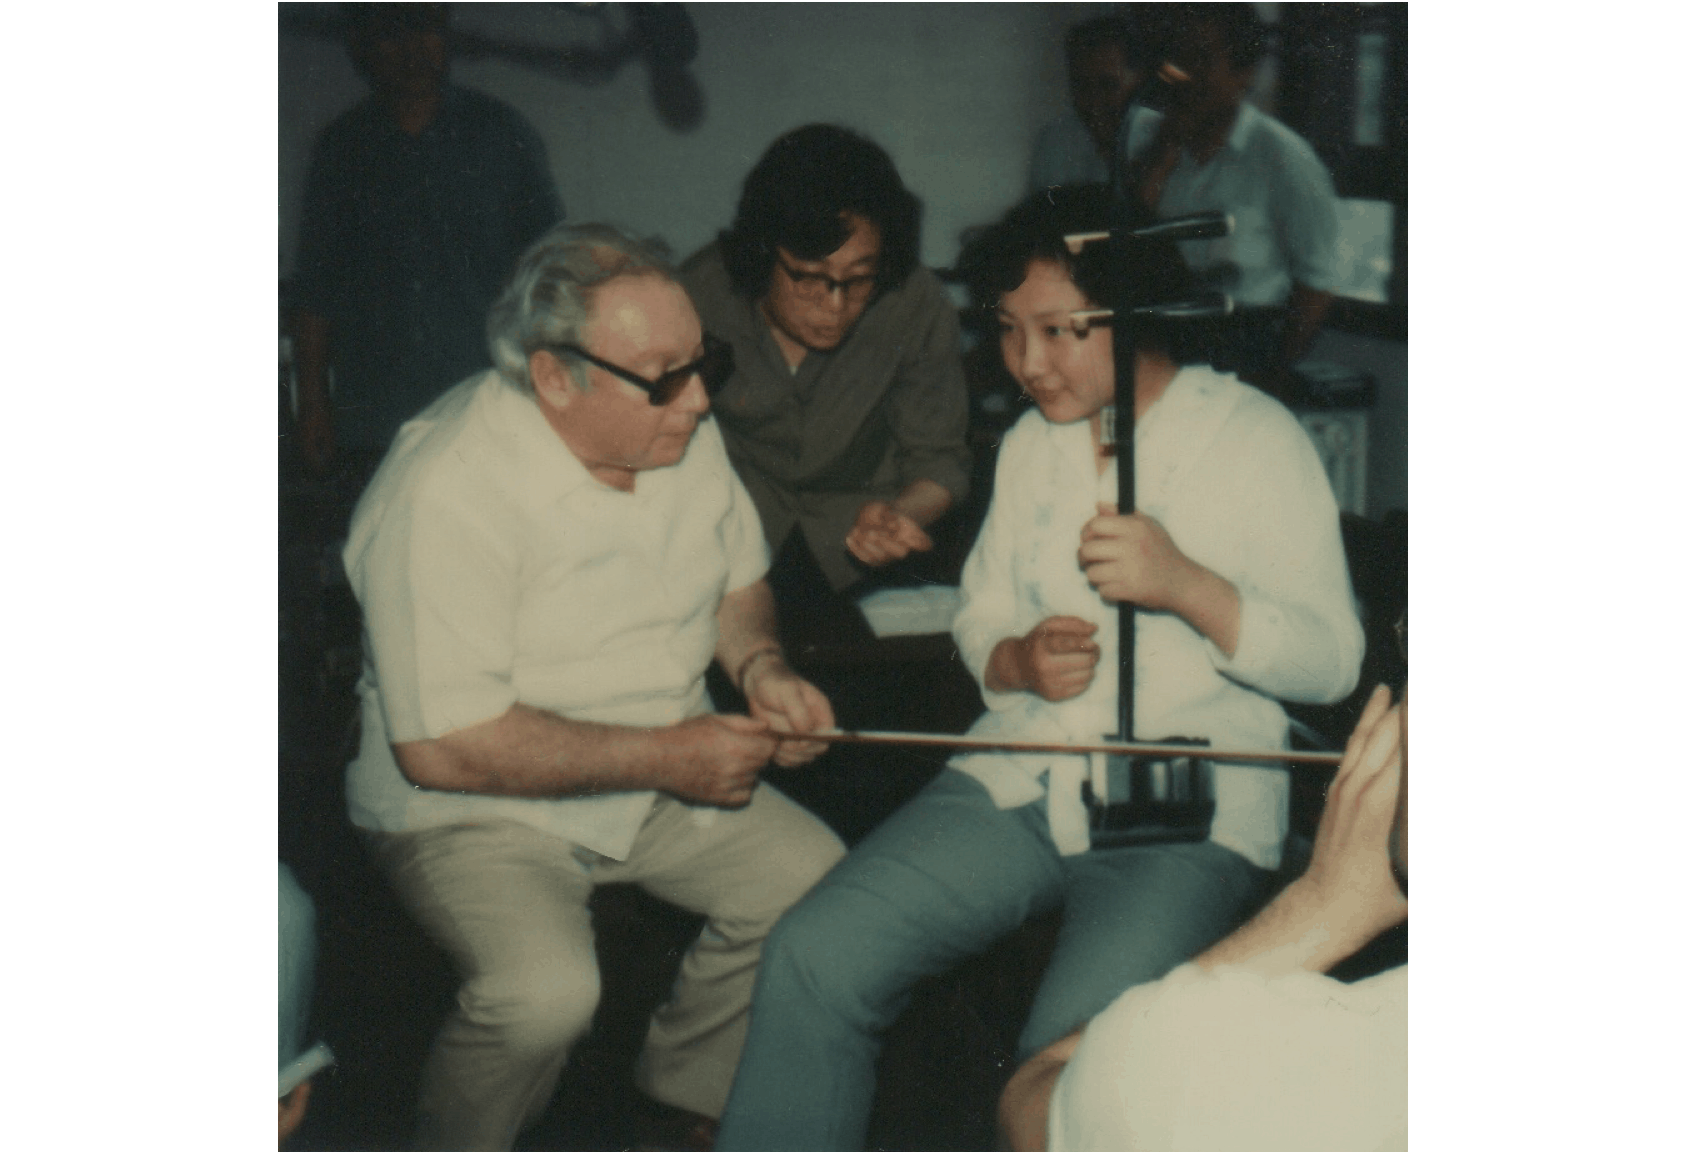 Isaac Stern playing an Erhu at the Central Conservatory of Music